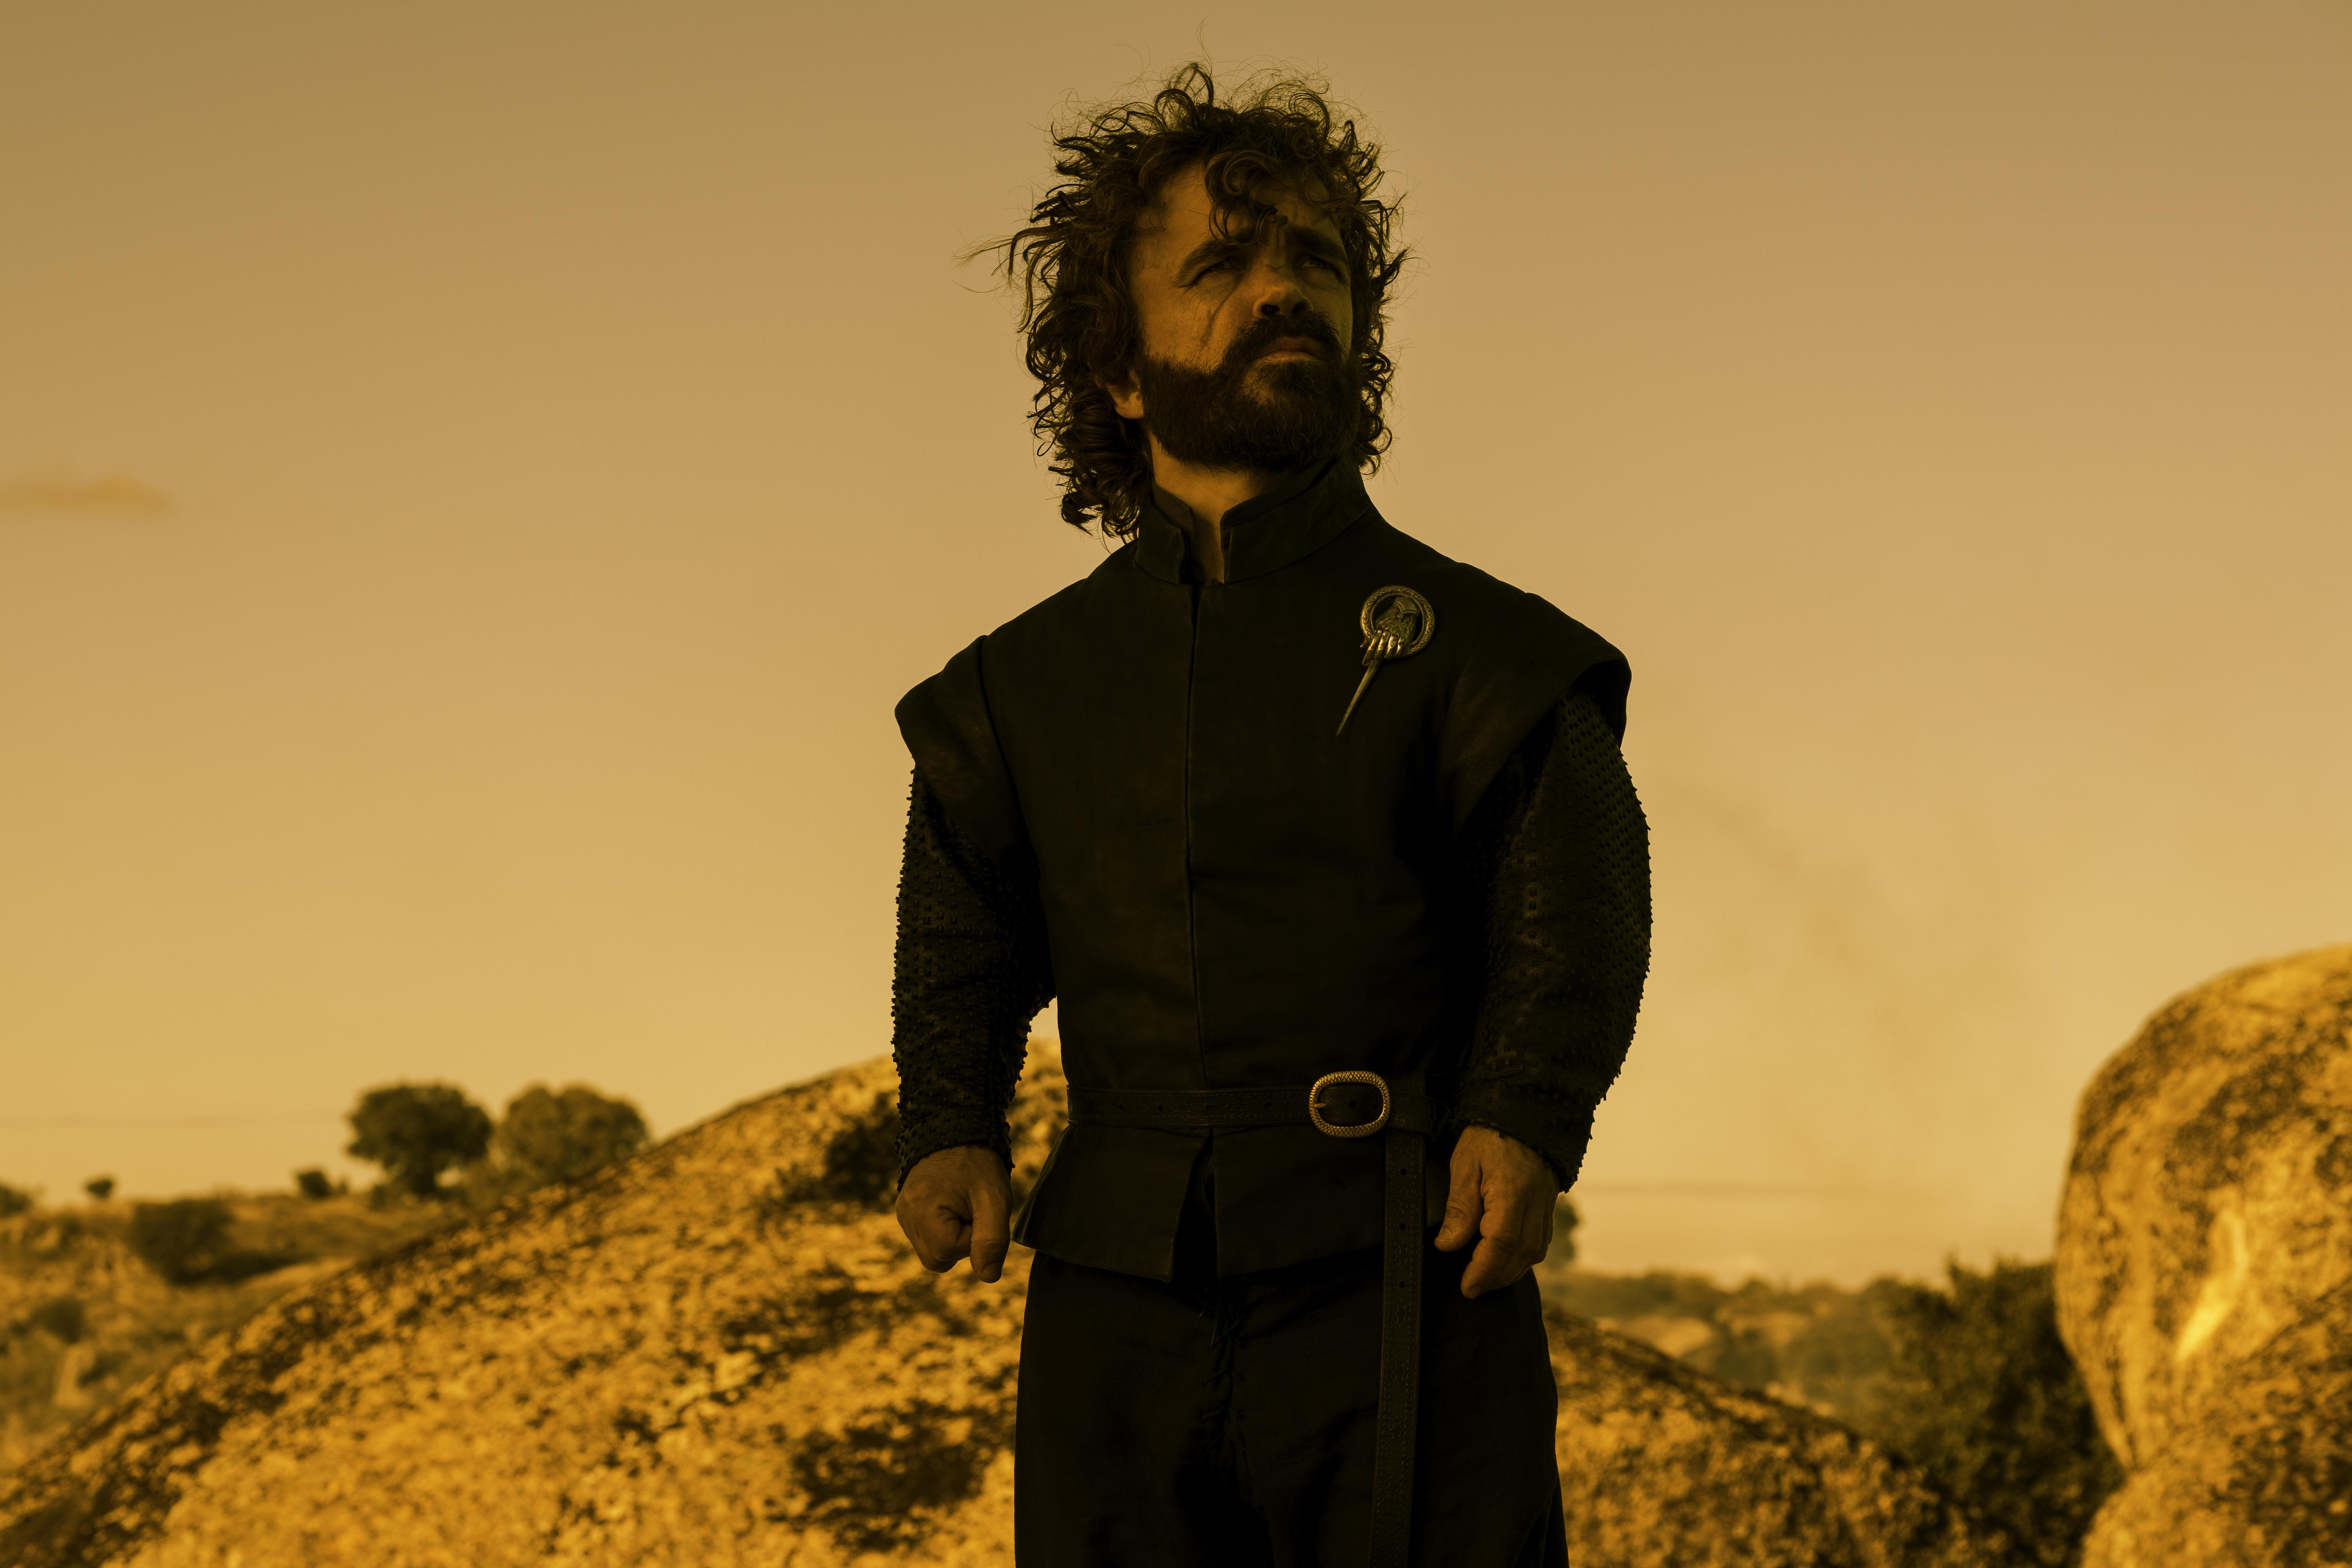 Tyrion Lannister 7x04 - The Spoils of War